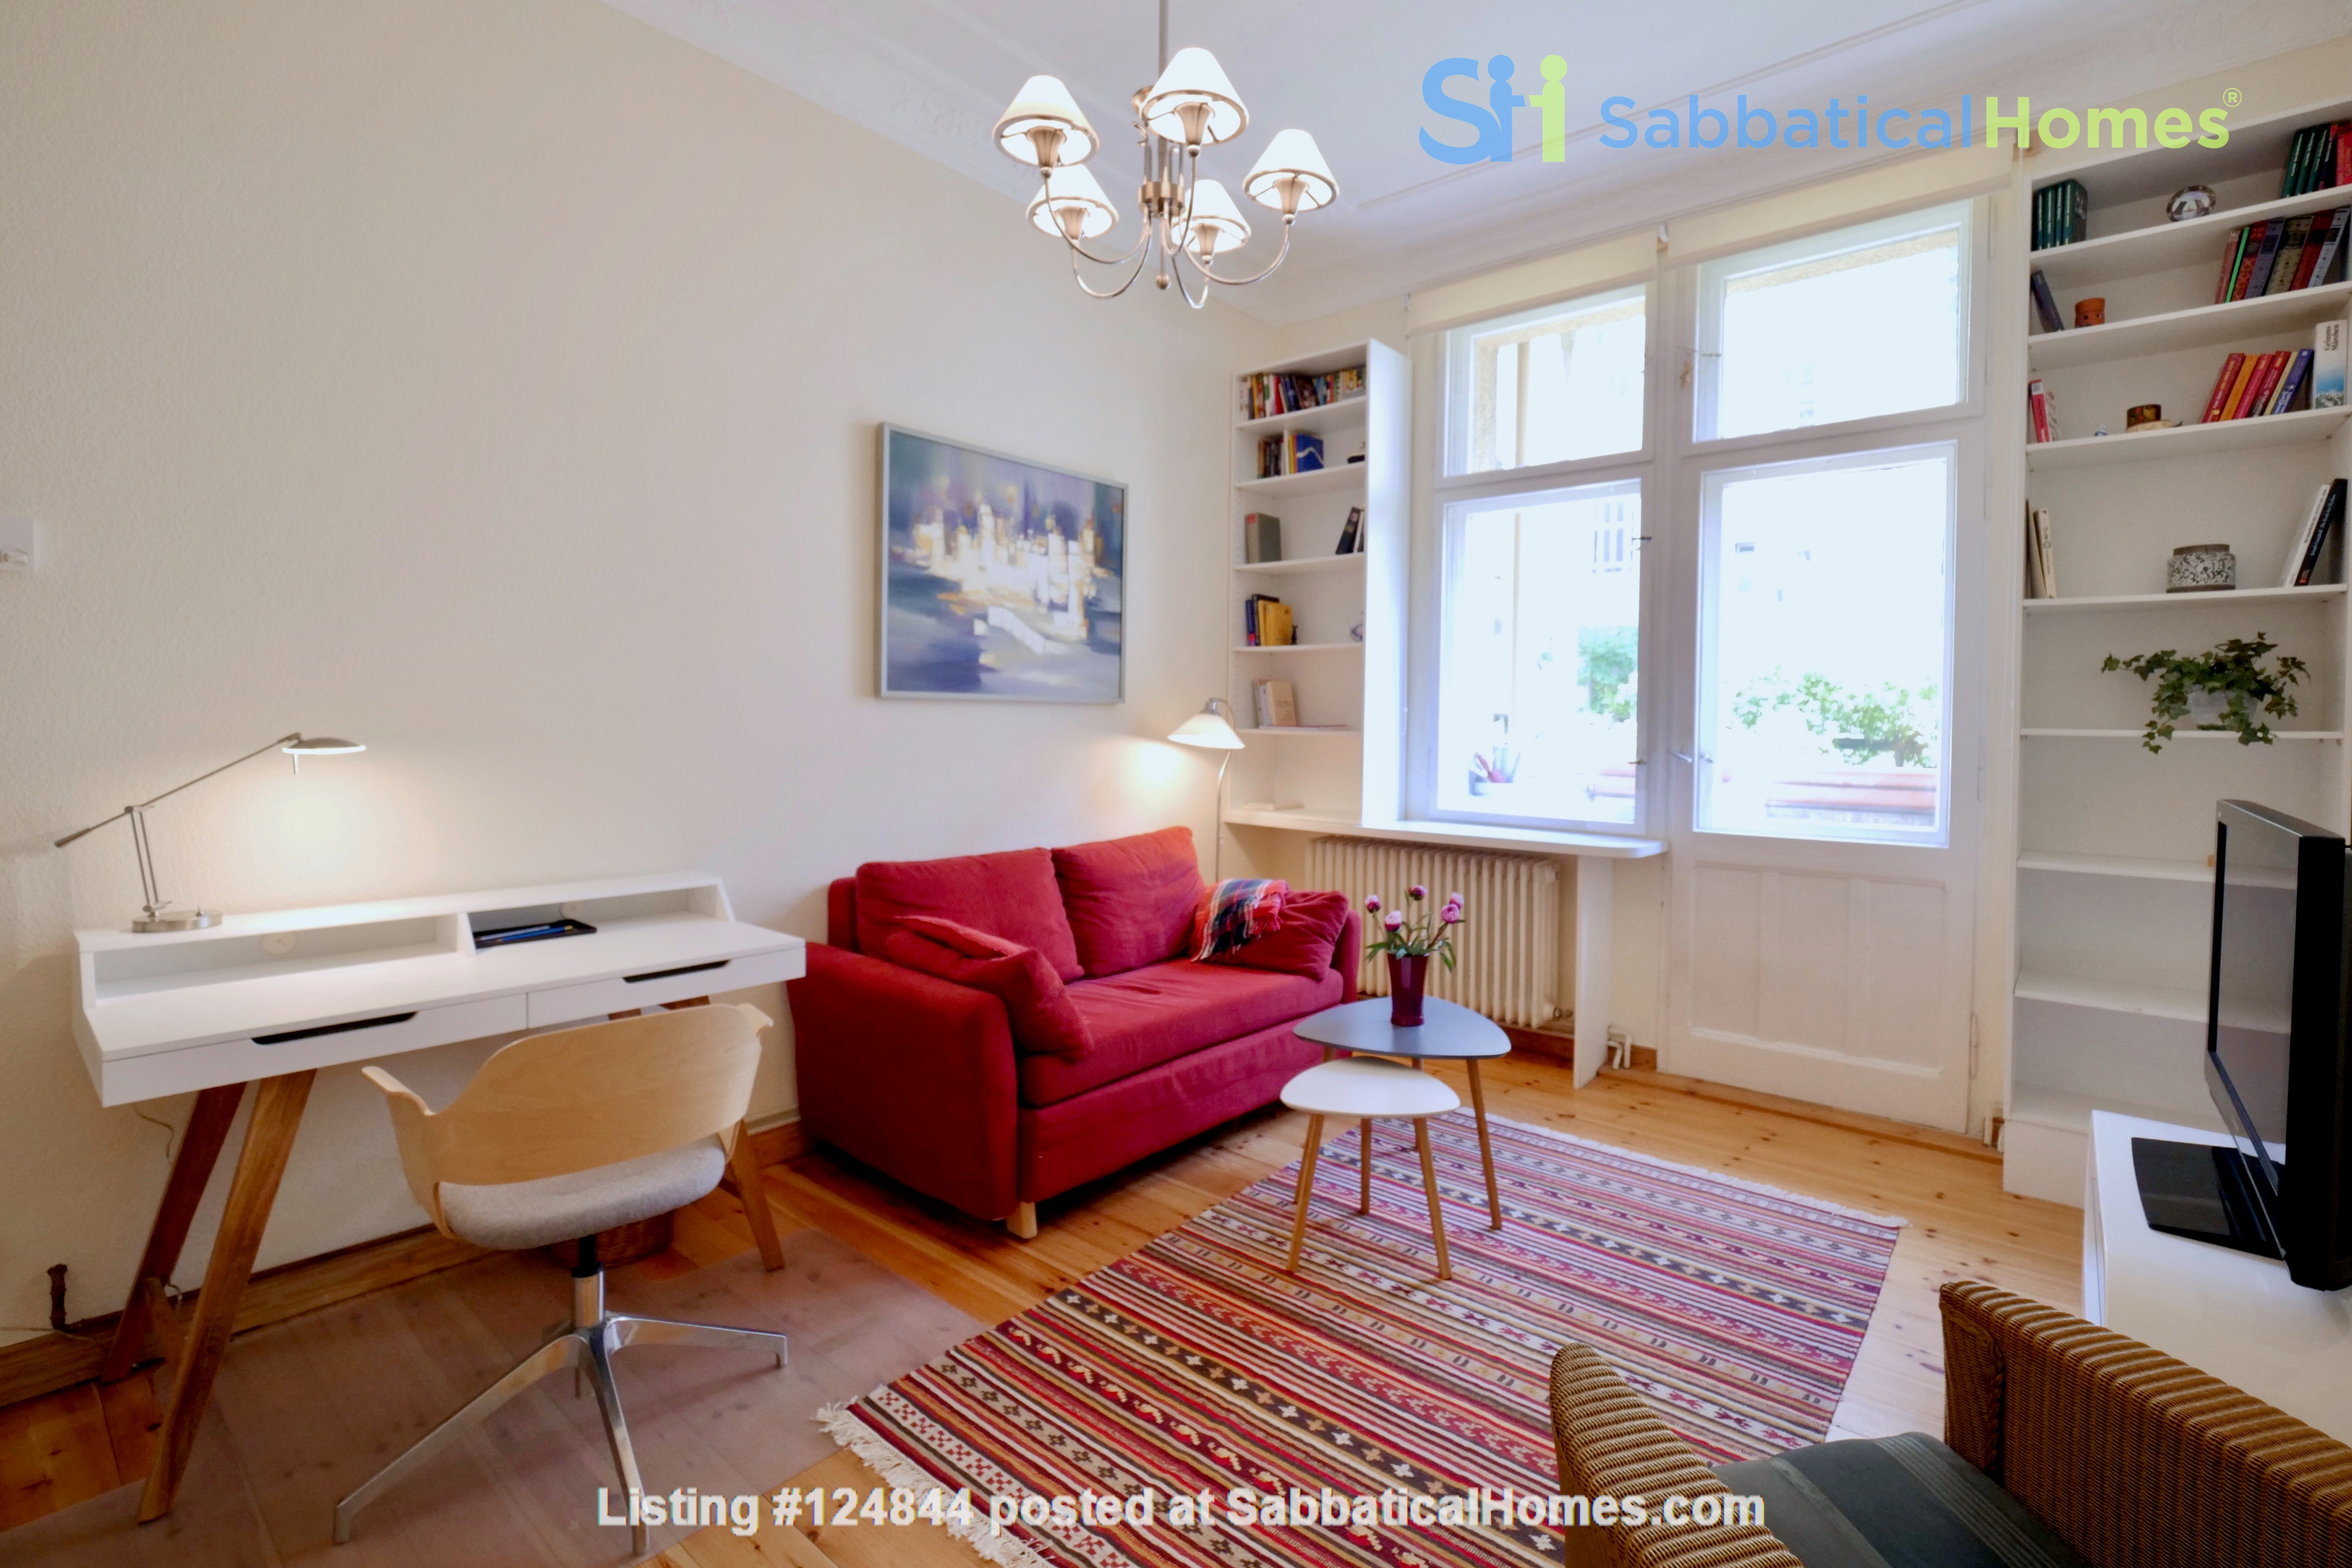 Charming 2-room apartment with balcony and fireplace Home Rental in Berlin, Berlin, Germany 1